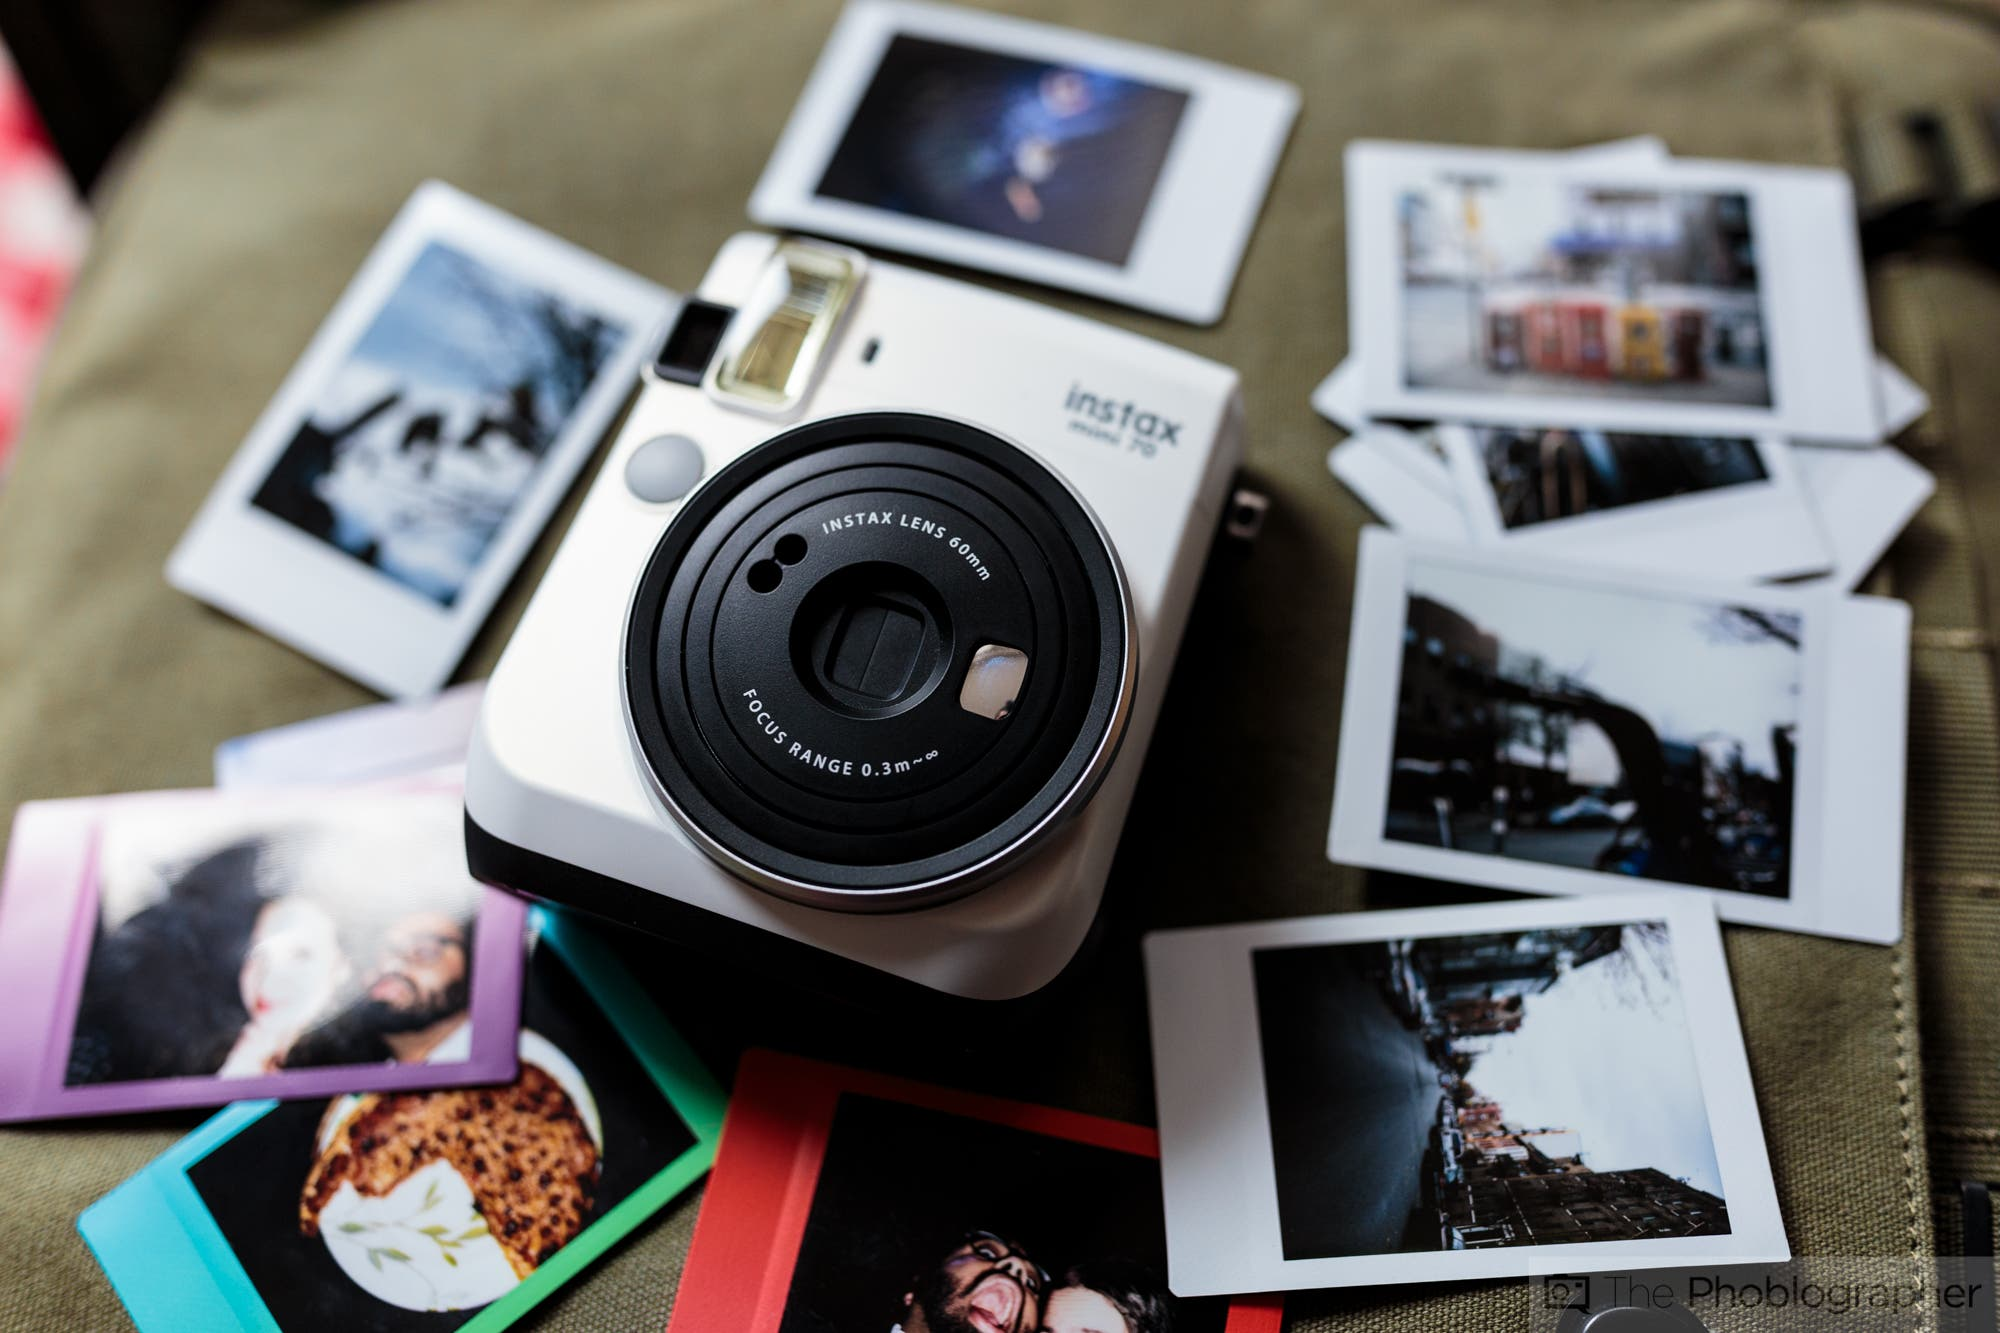 Chris Gampat The Phoblographer Fujifilm Instax Mini 70 Product Images 2 Of 10ISO